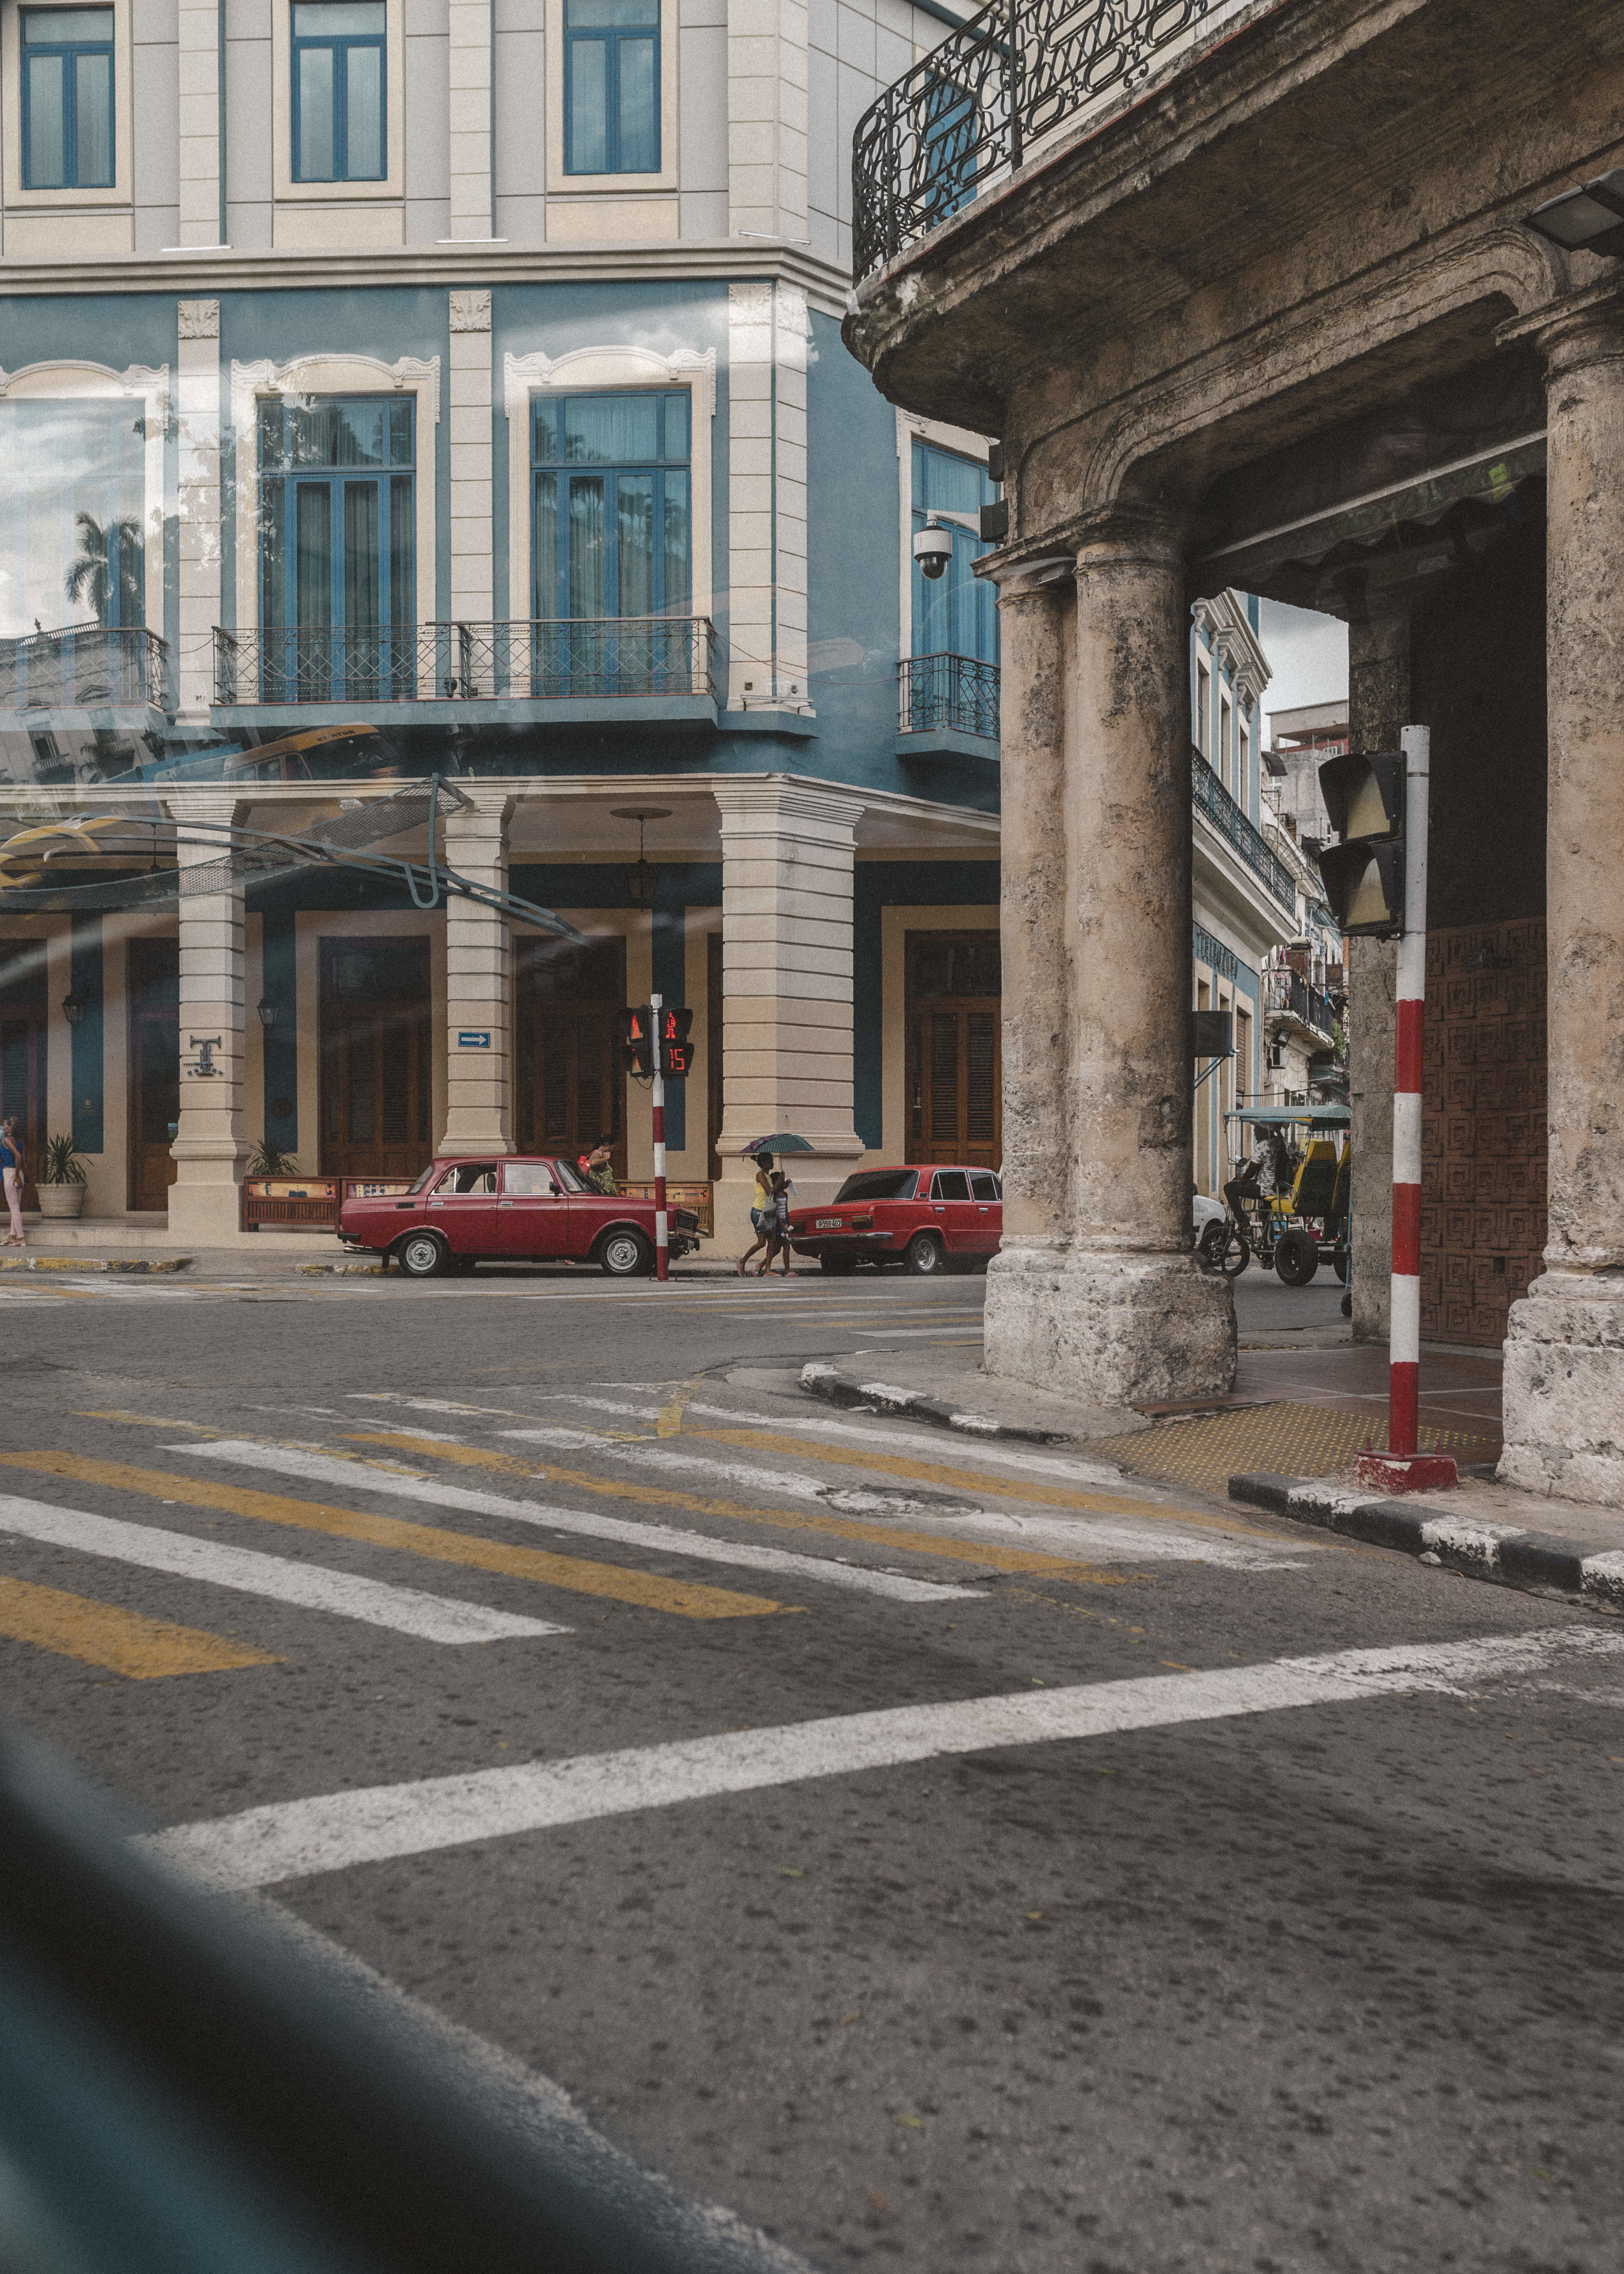 havana-travel-guide-by-lisa-linh